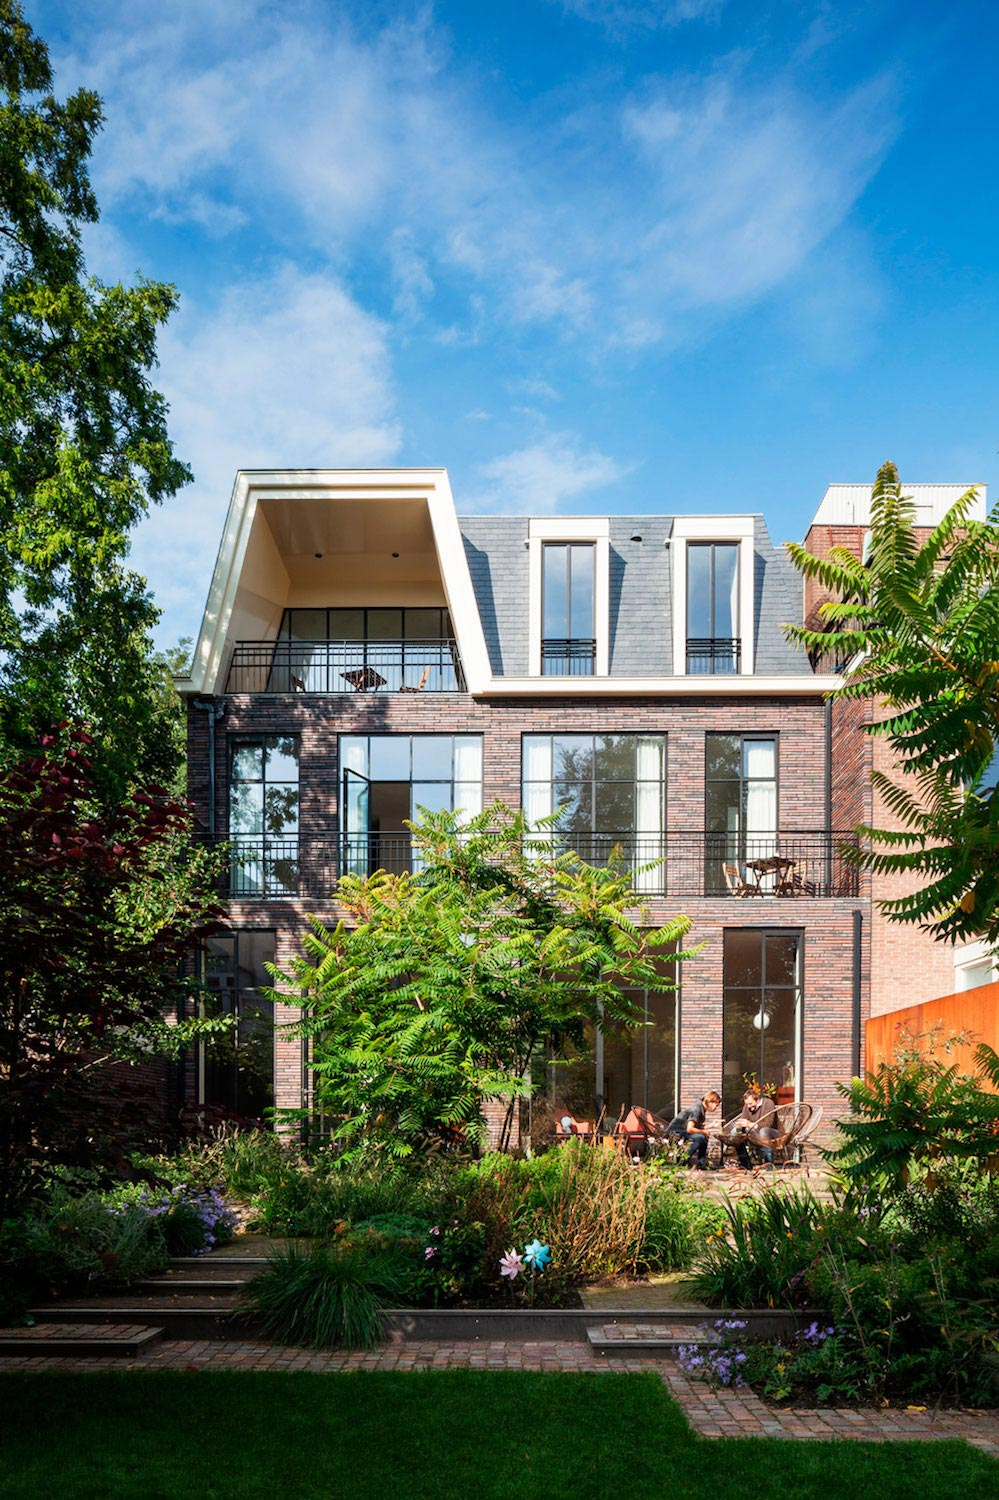 Former museum of Kralingen transformation into a luxury home located on one of the oldest streets in Rotterdam